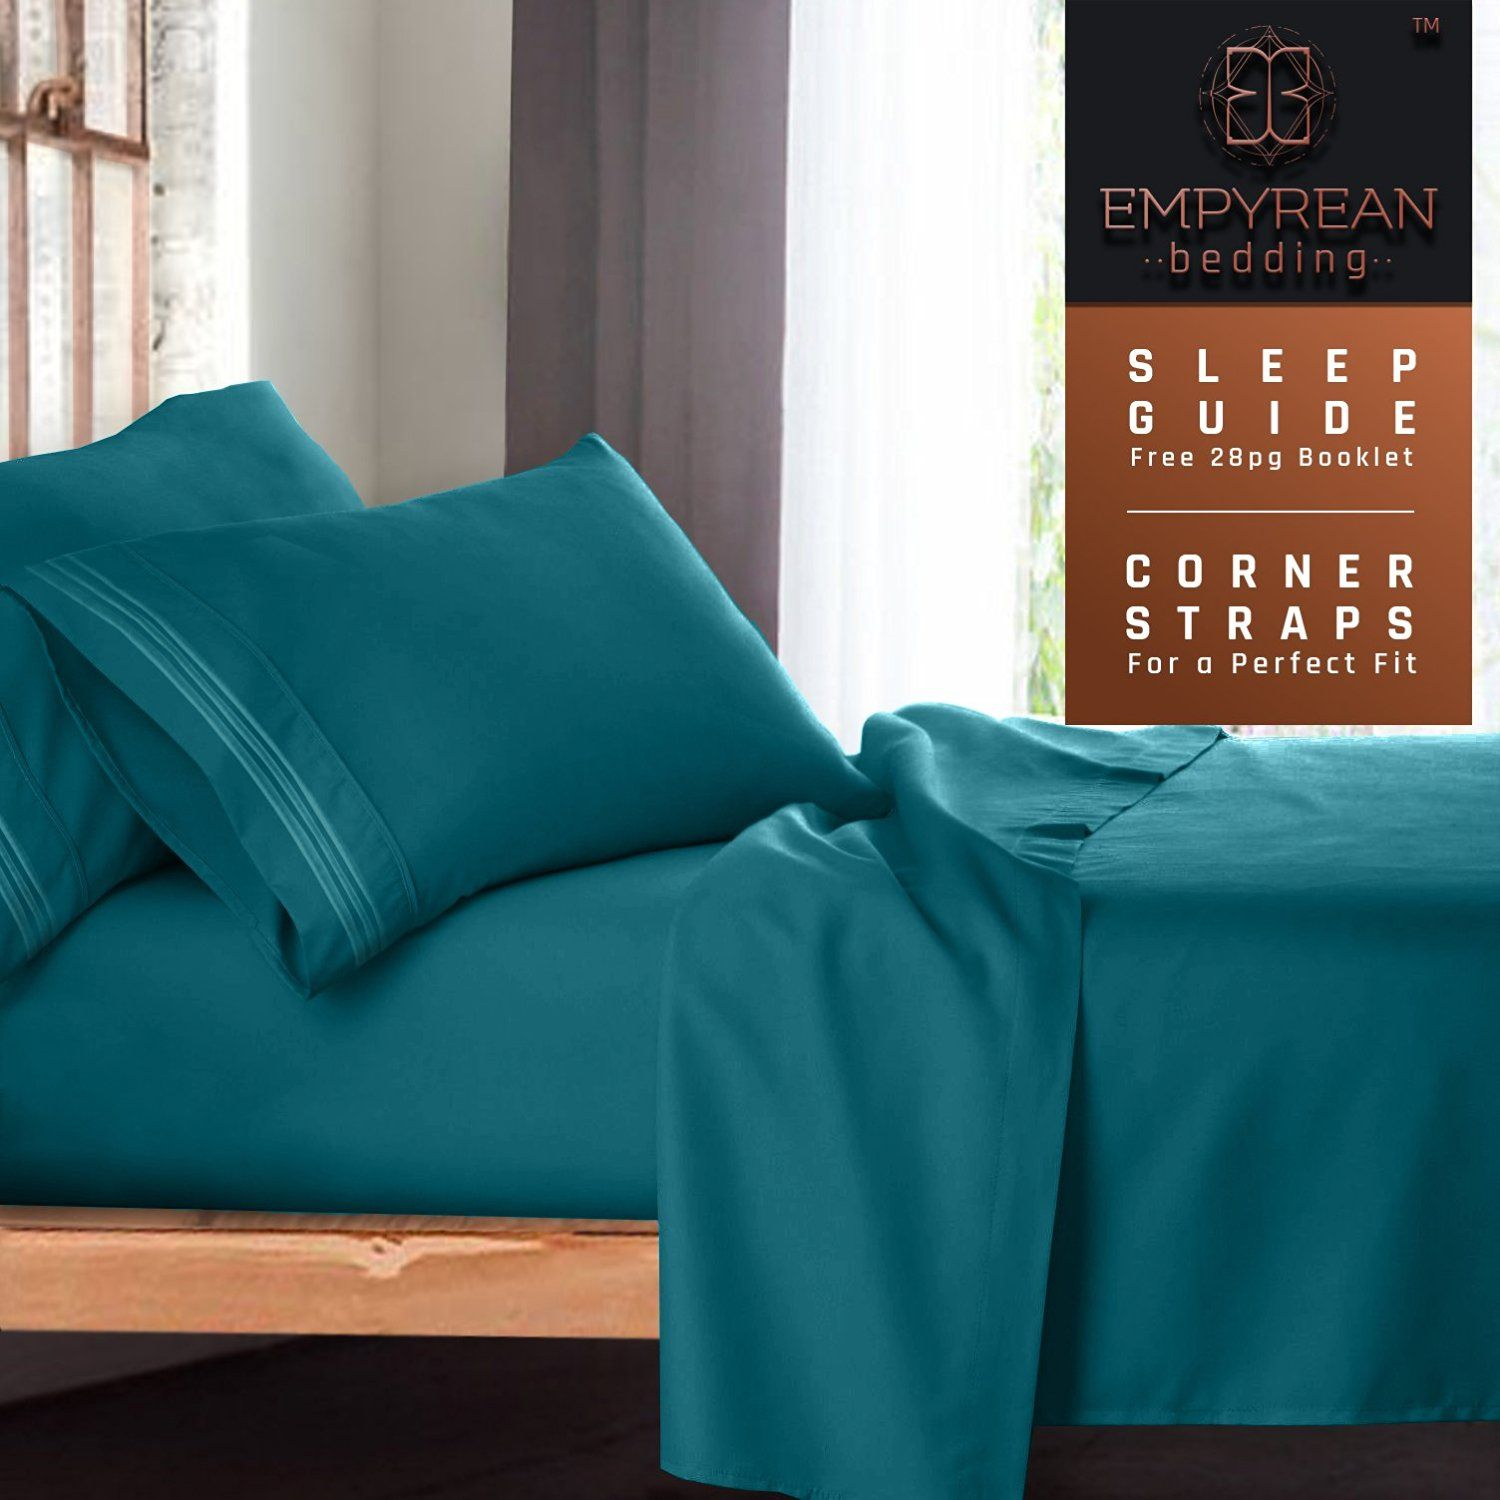 Queen Size Bed Sheets Set Teal Turquoise Soft Luxury Best Quality 4 Piece